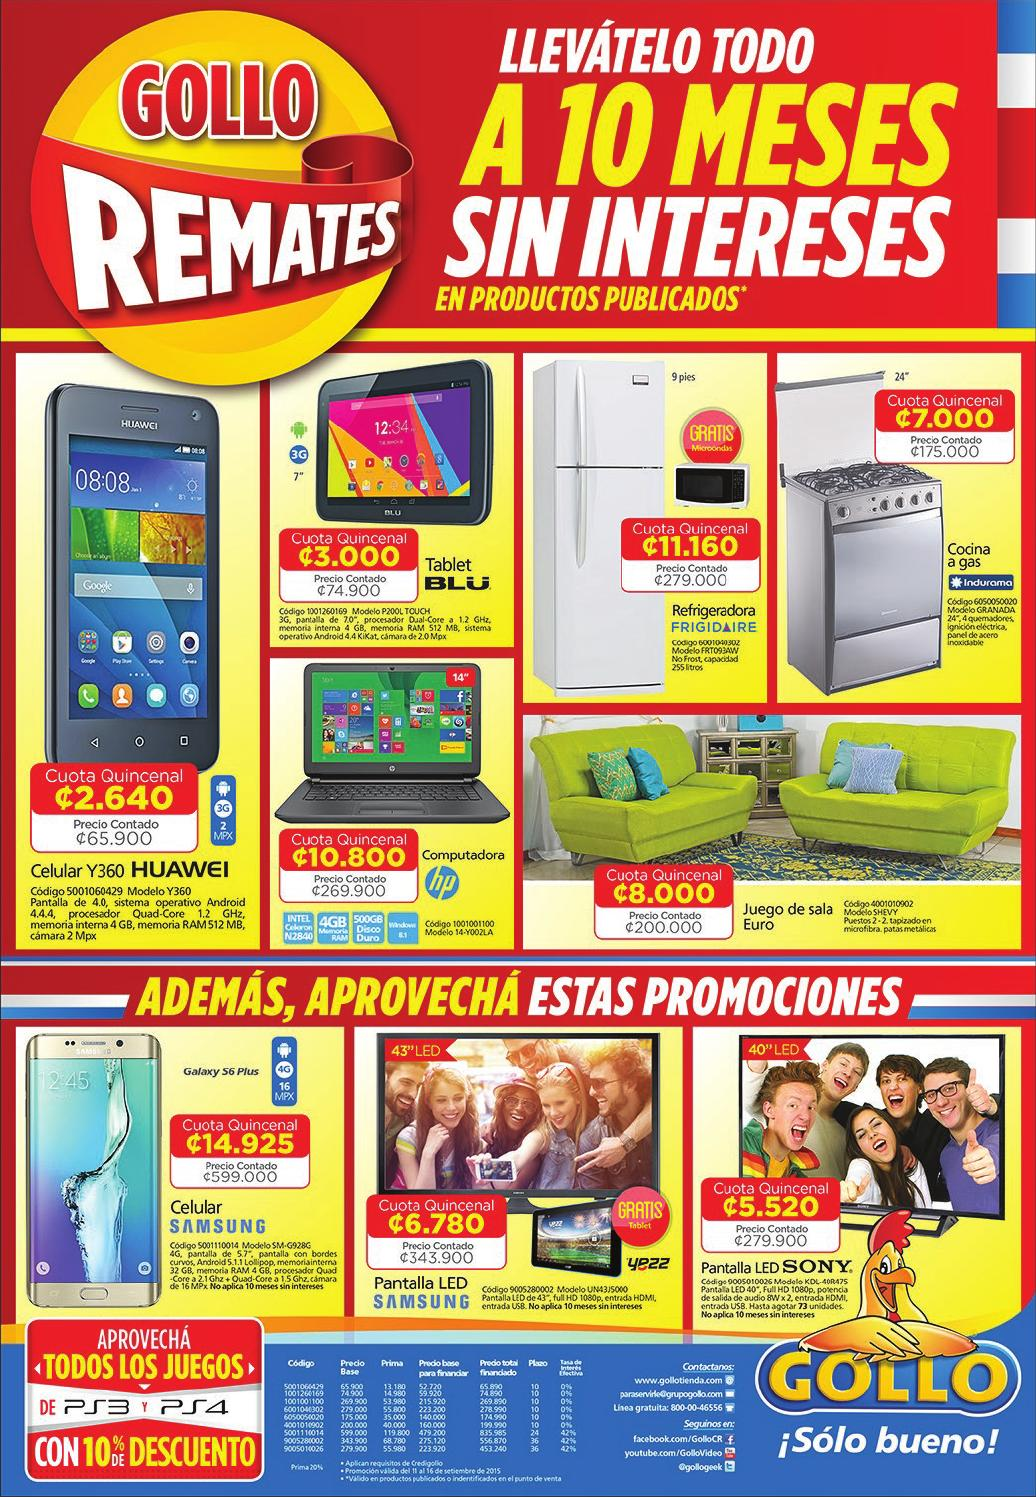 Cuatro Meses Sin Fumar Beneficios 10 Meses Sin Intereses Gollo By Gollo Issuu